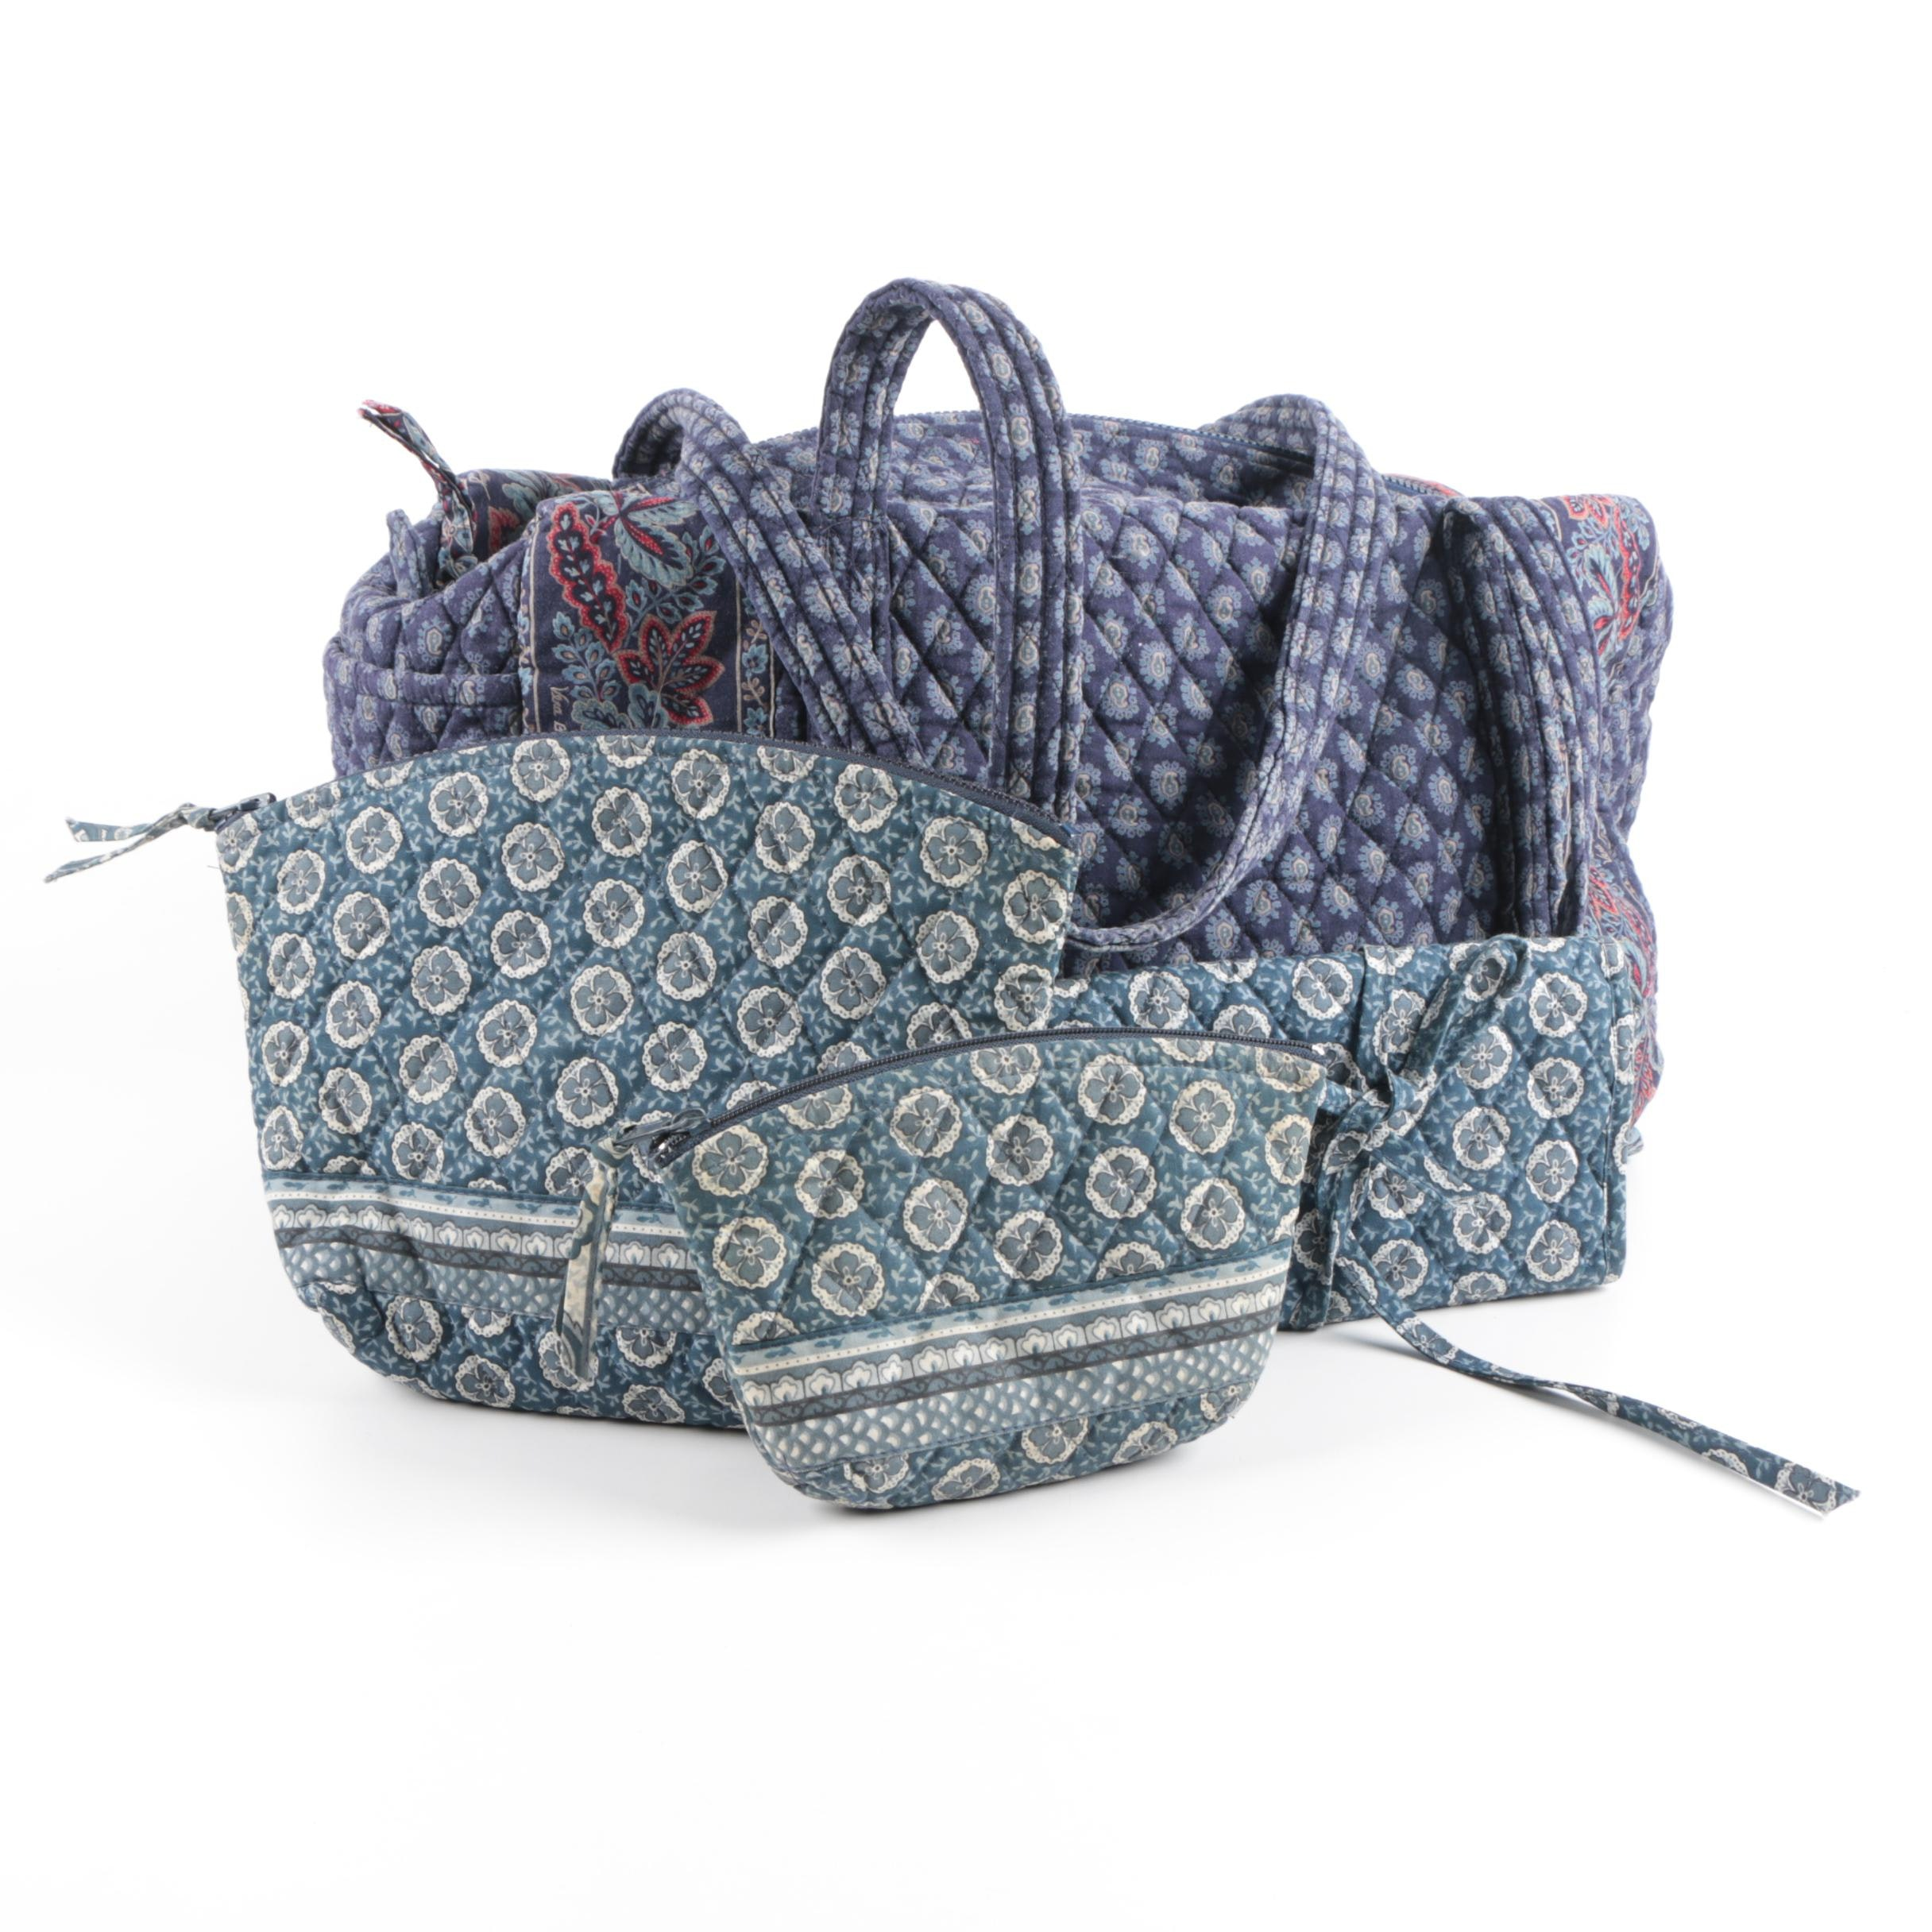 Vera Bradley Travel Bag with Three Pouches